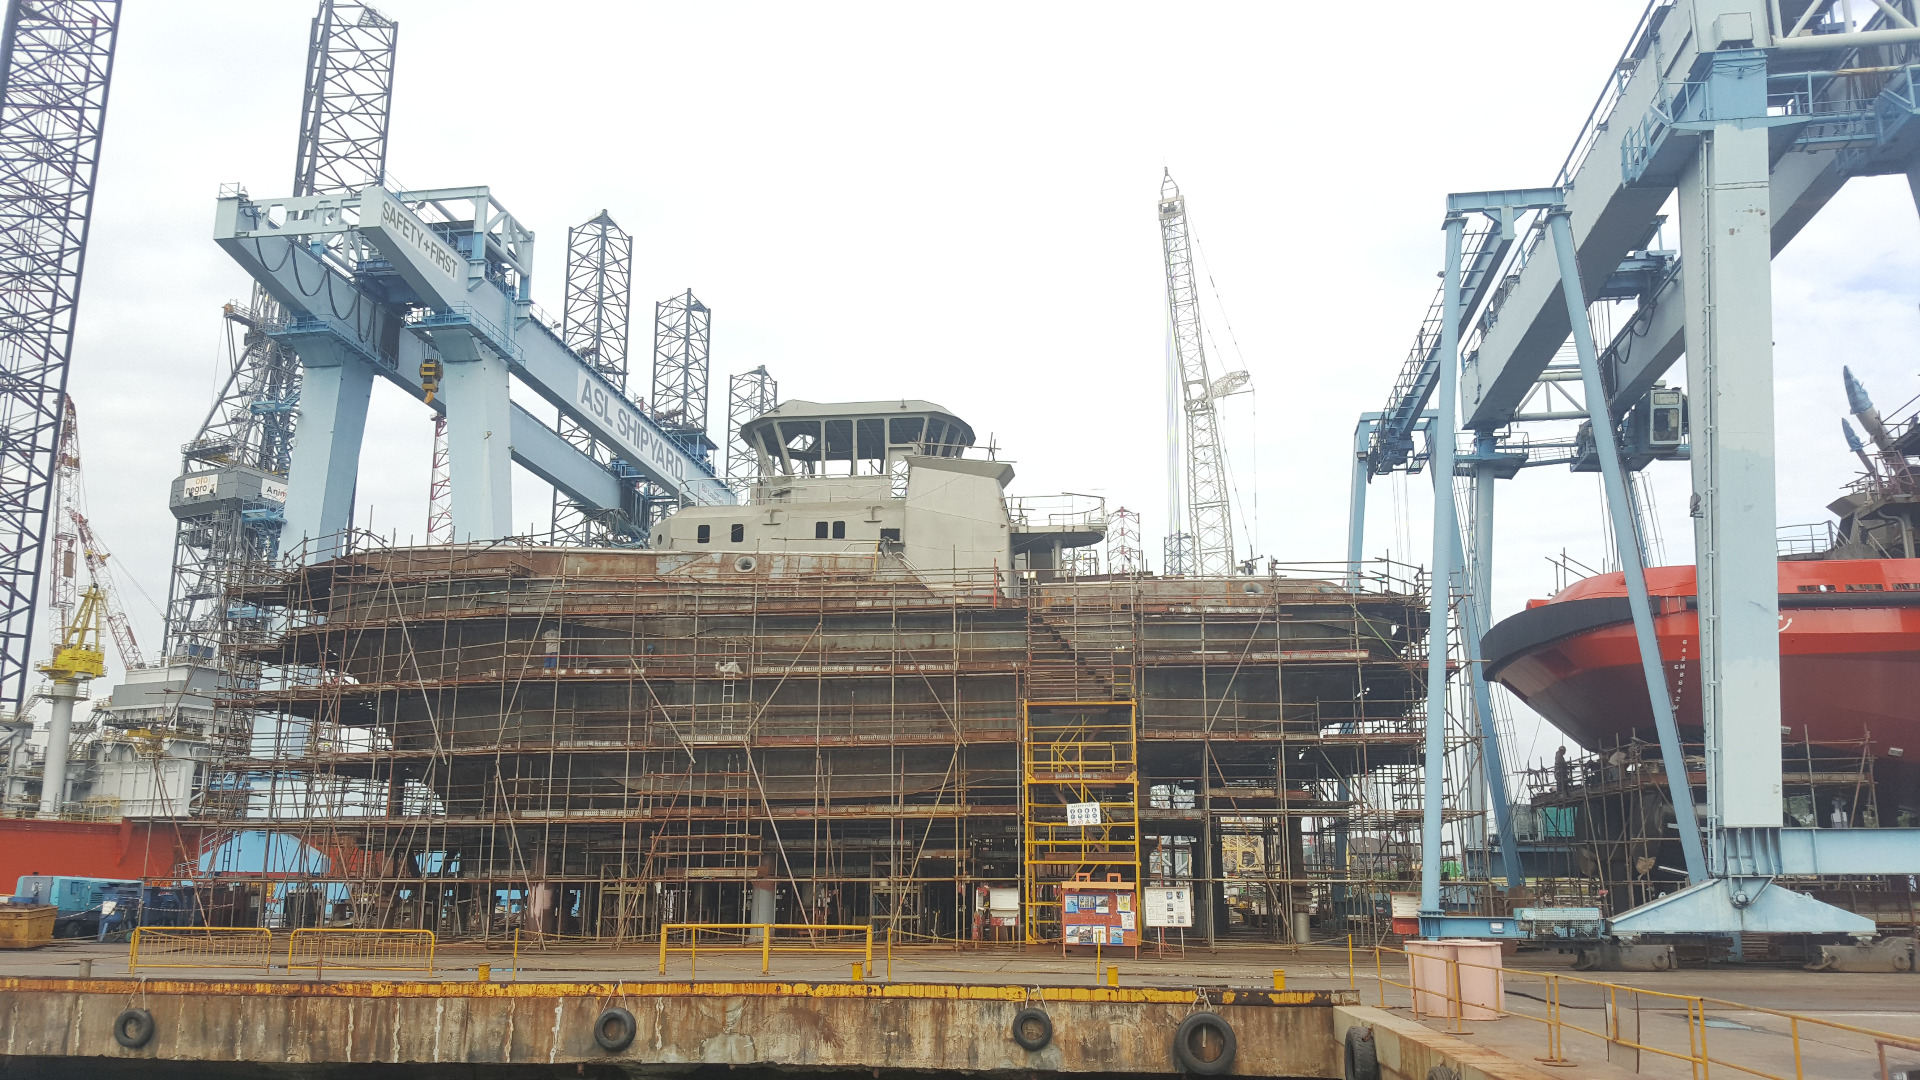 New build surveys for commissioning, fitout & sea trials